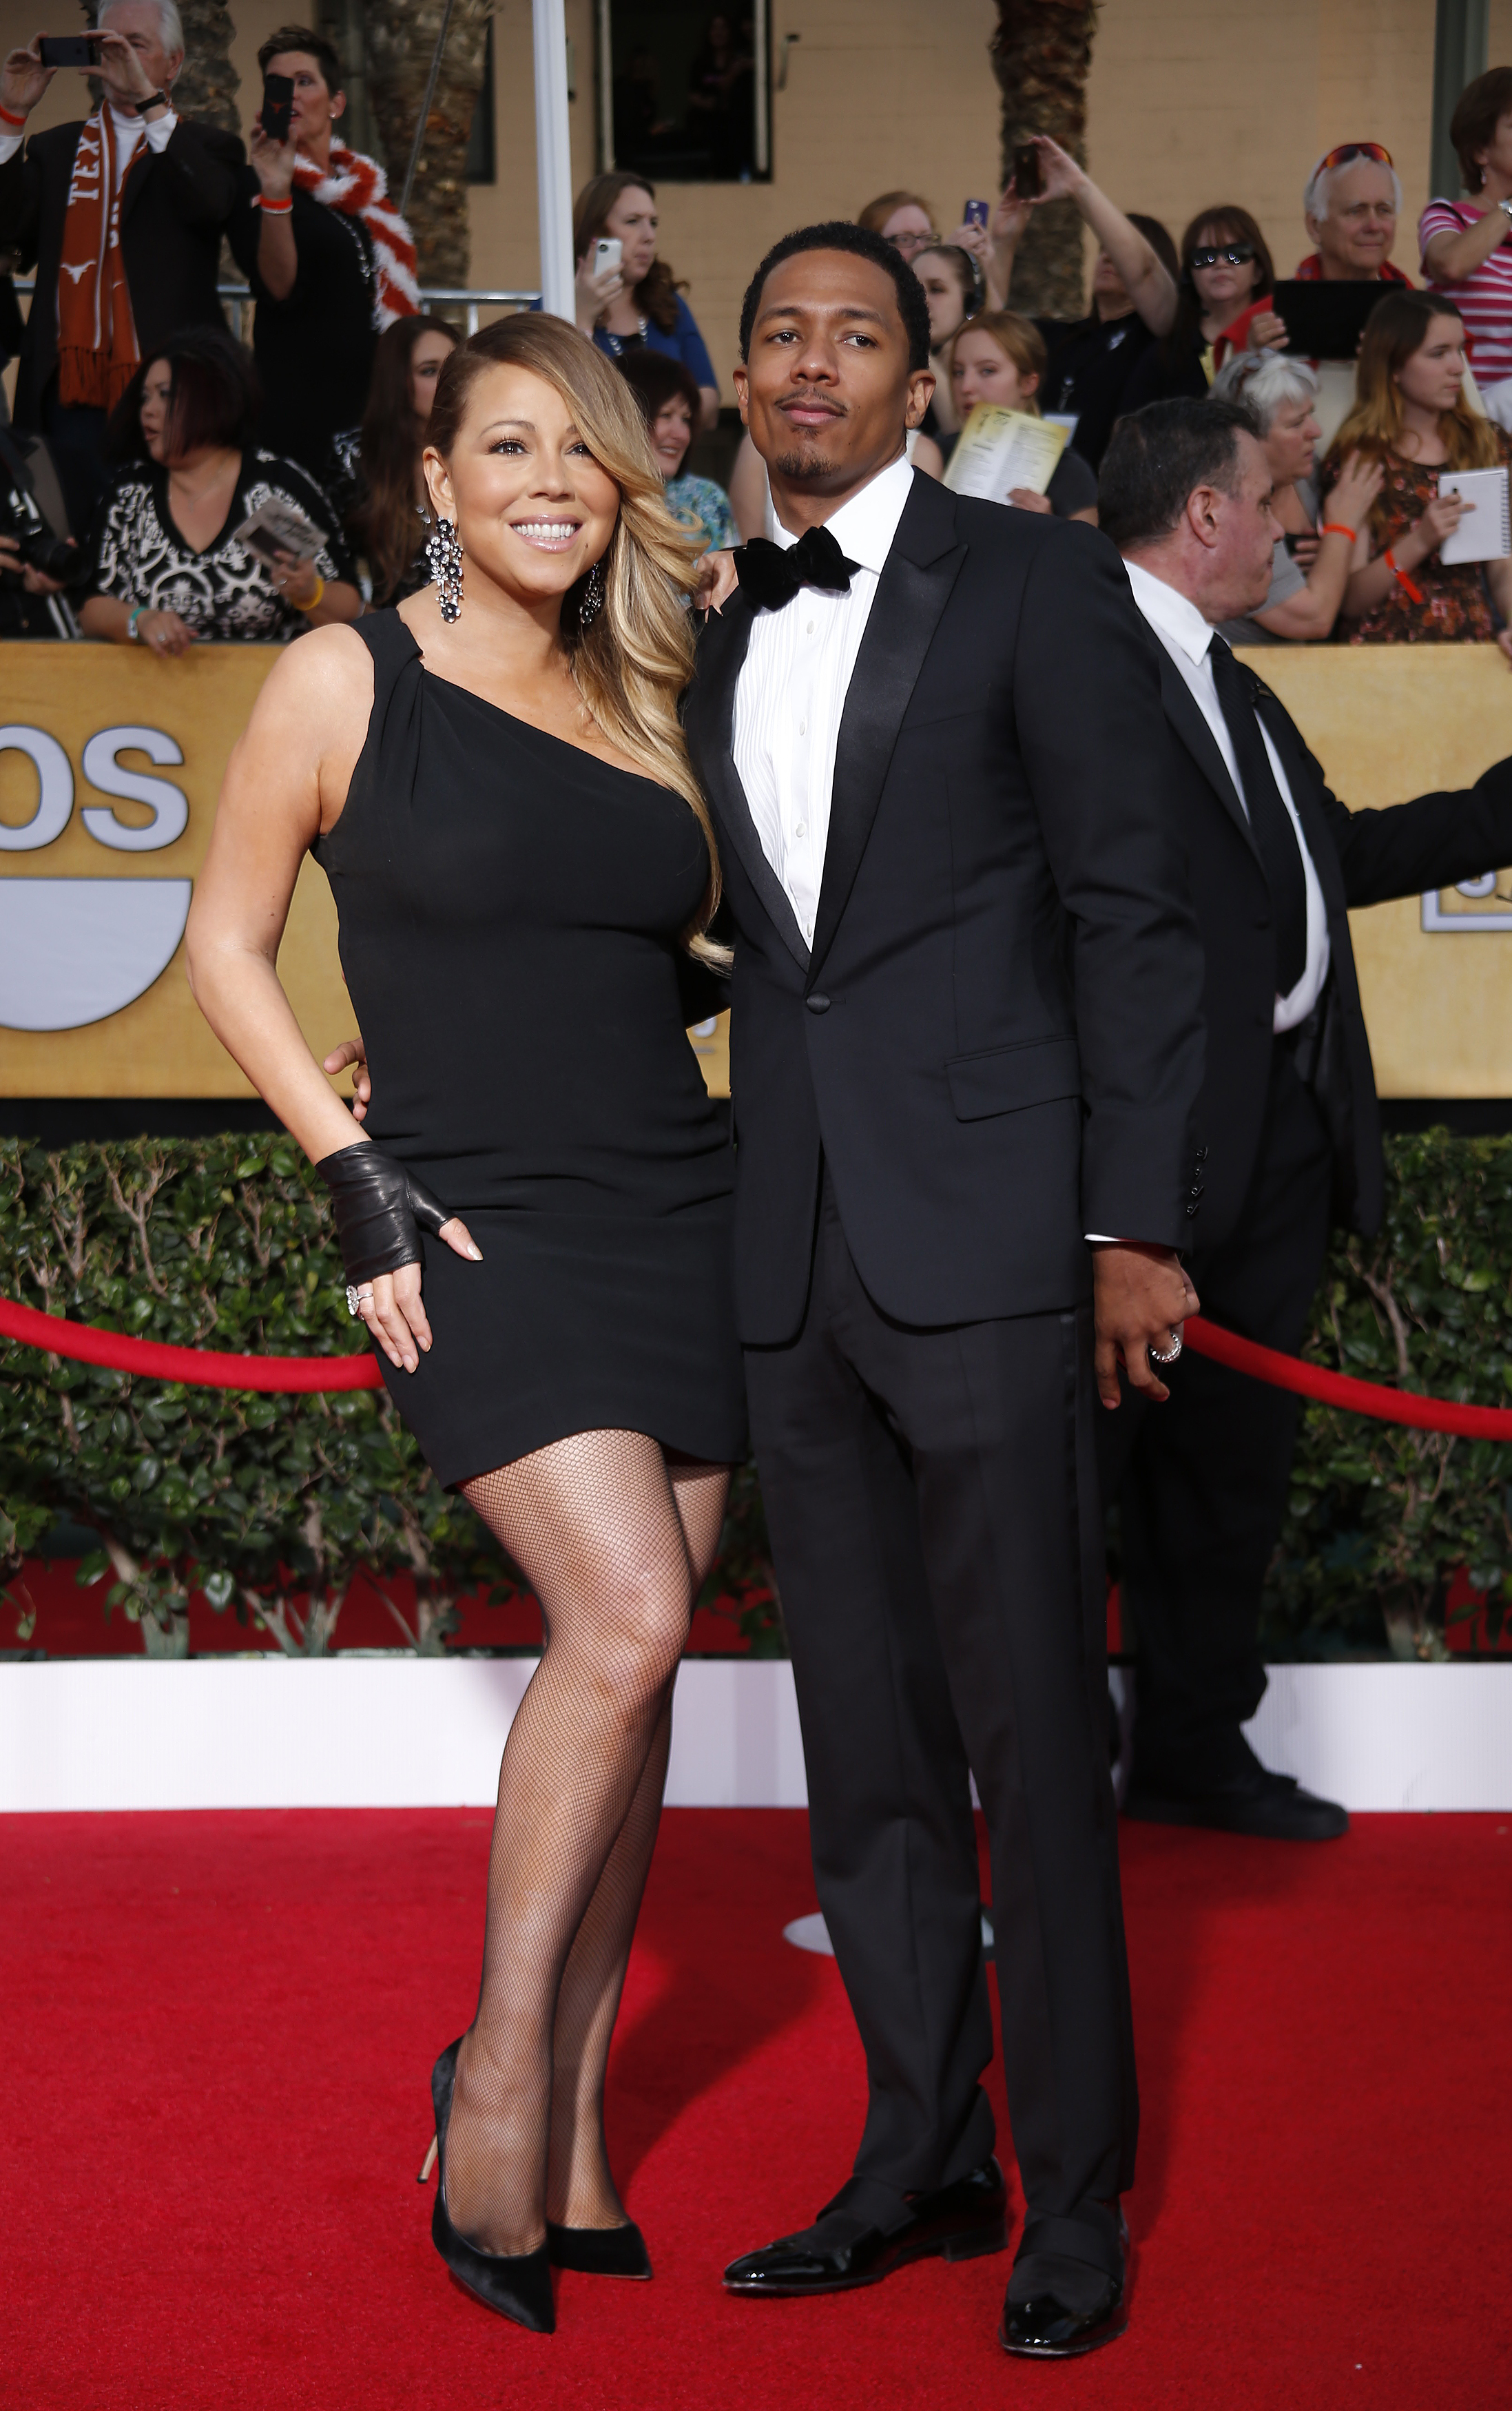 Nick Cannon Speaks Out About Mariah Carey Divorce Drama ...